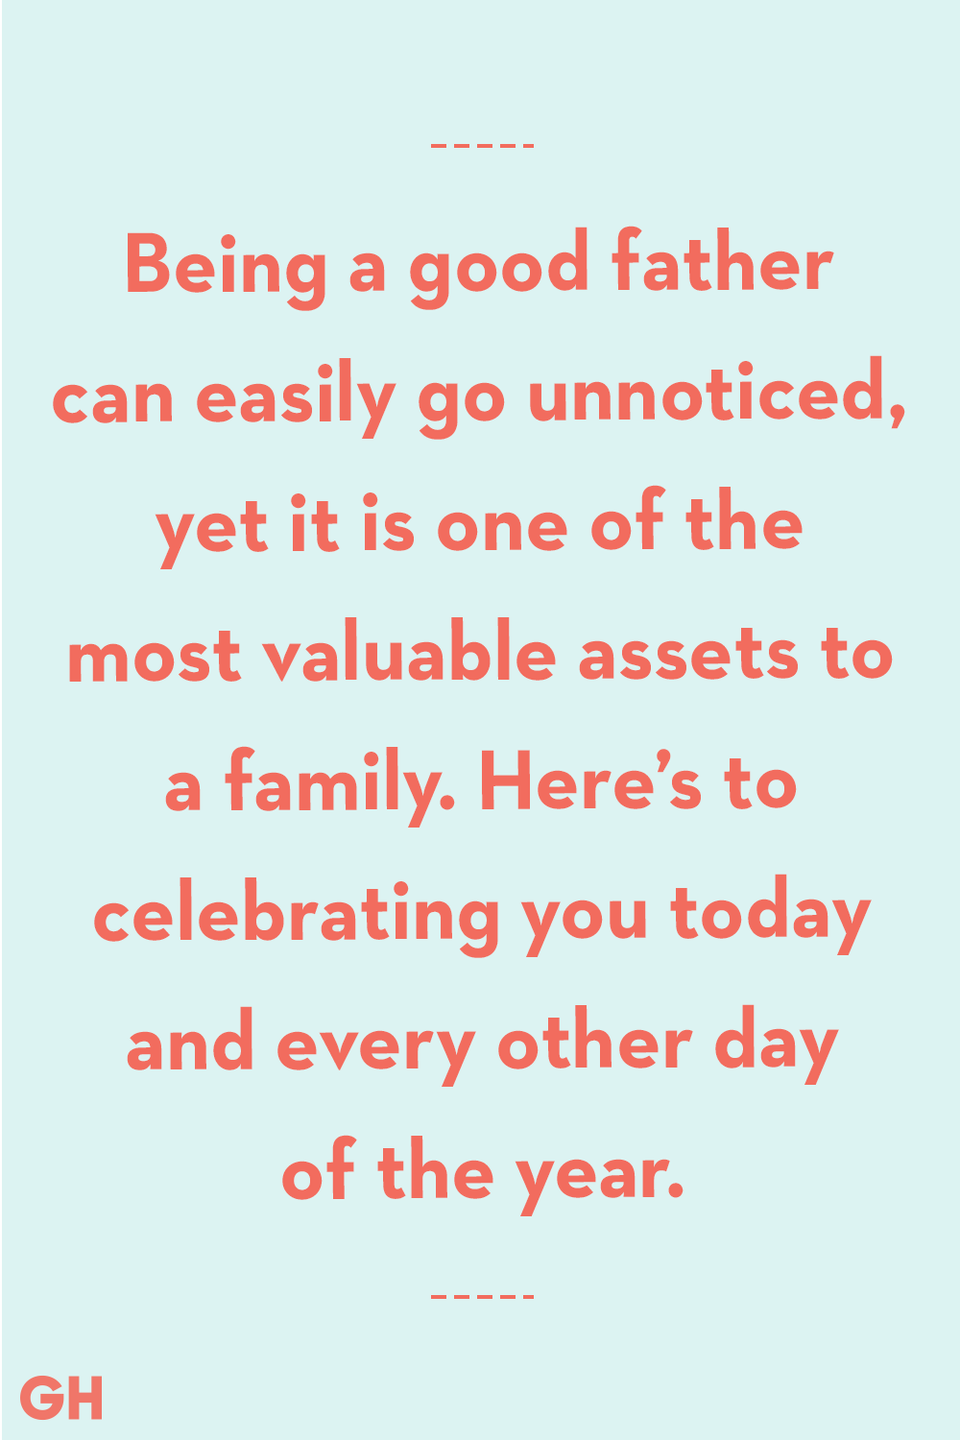 <p>Being a good father can easily go unnoticed, yet it is one of the most valuable assets to a family. Here's to celebrating you today and every other day of the year.</p>